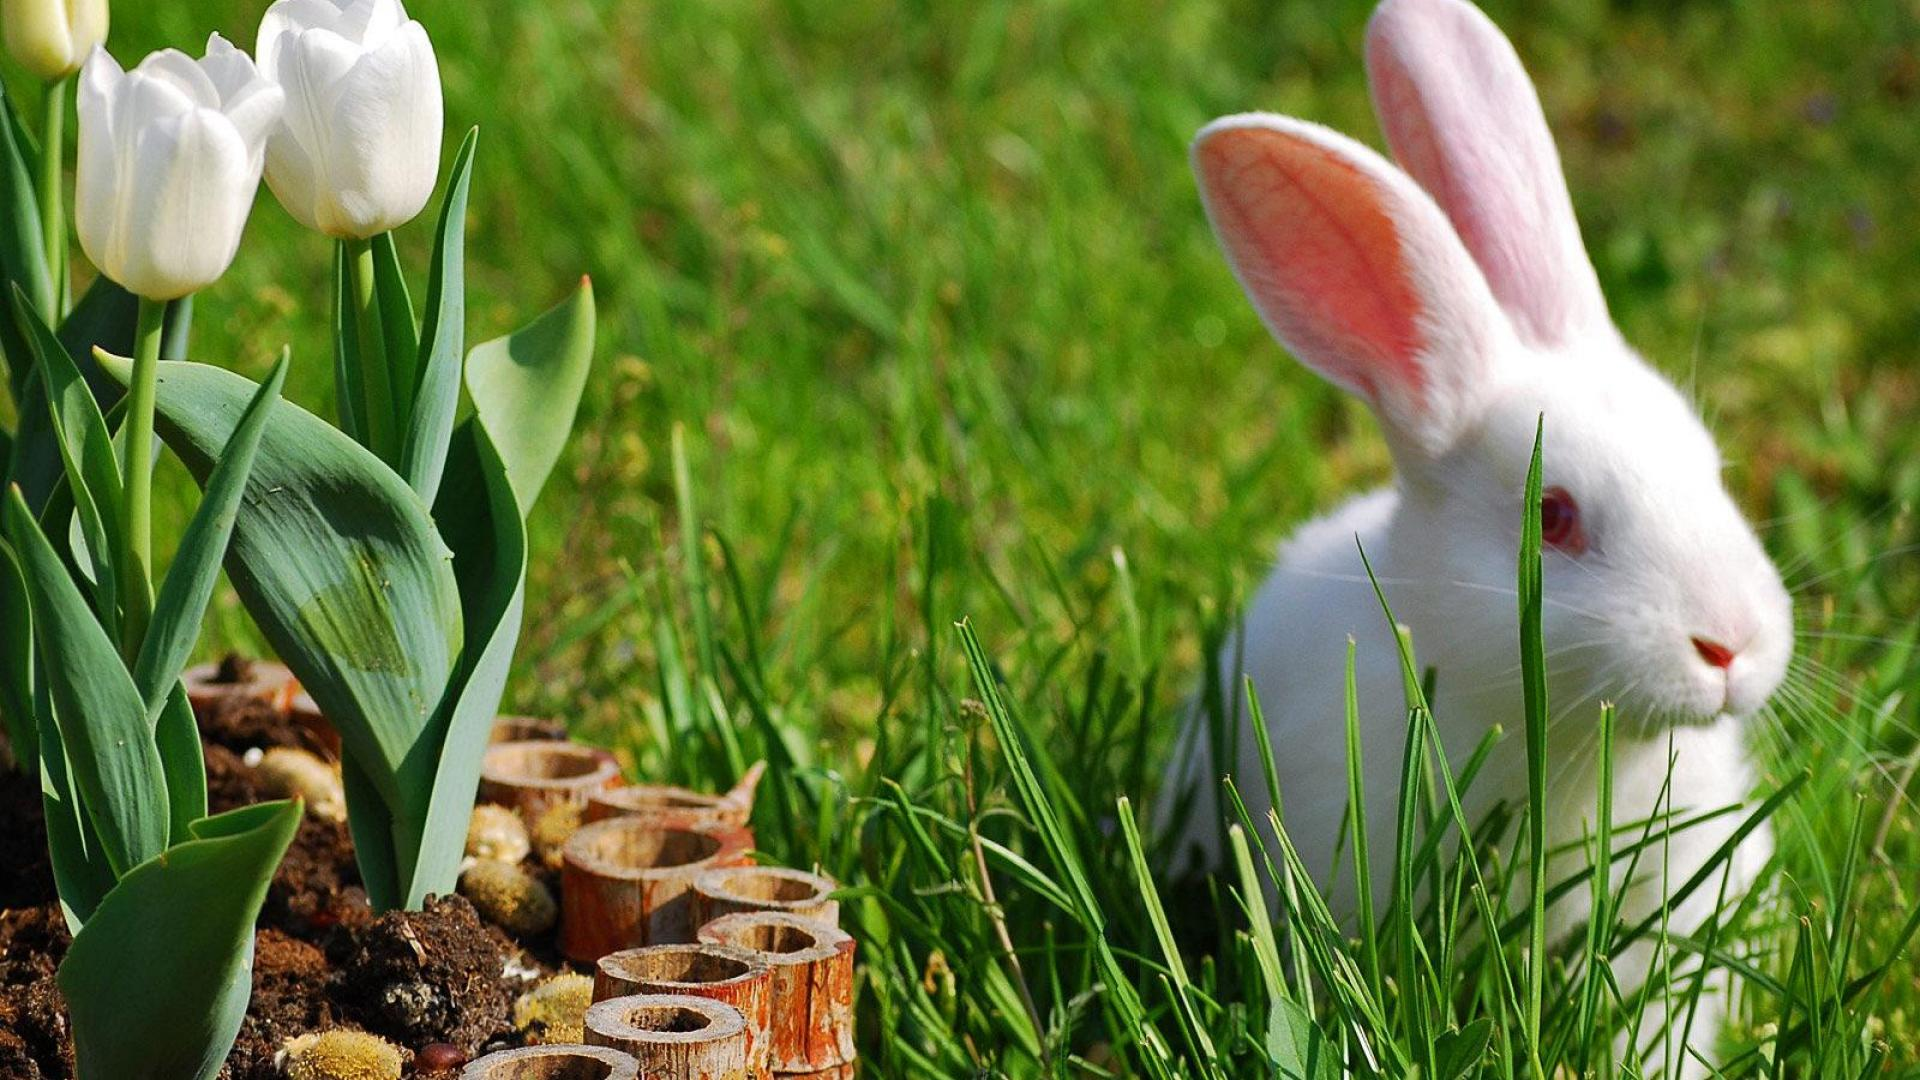 Cute Cartoon Wallpapers For Pc White Rabbit With Red Eyes In The Grass